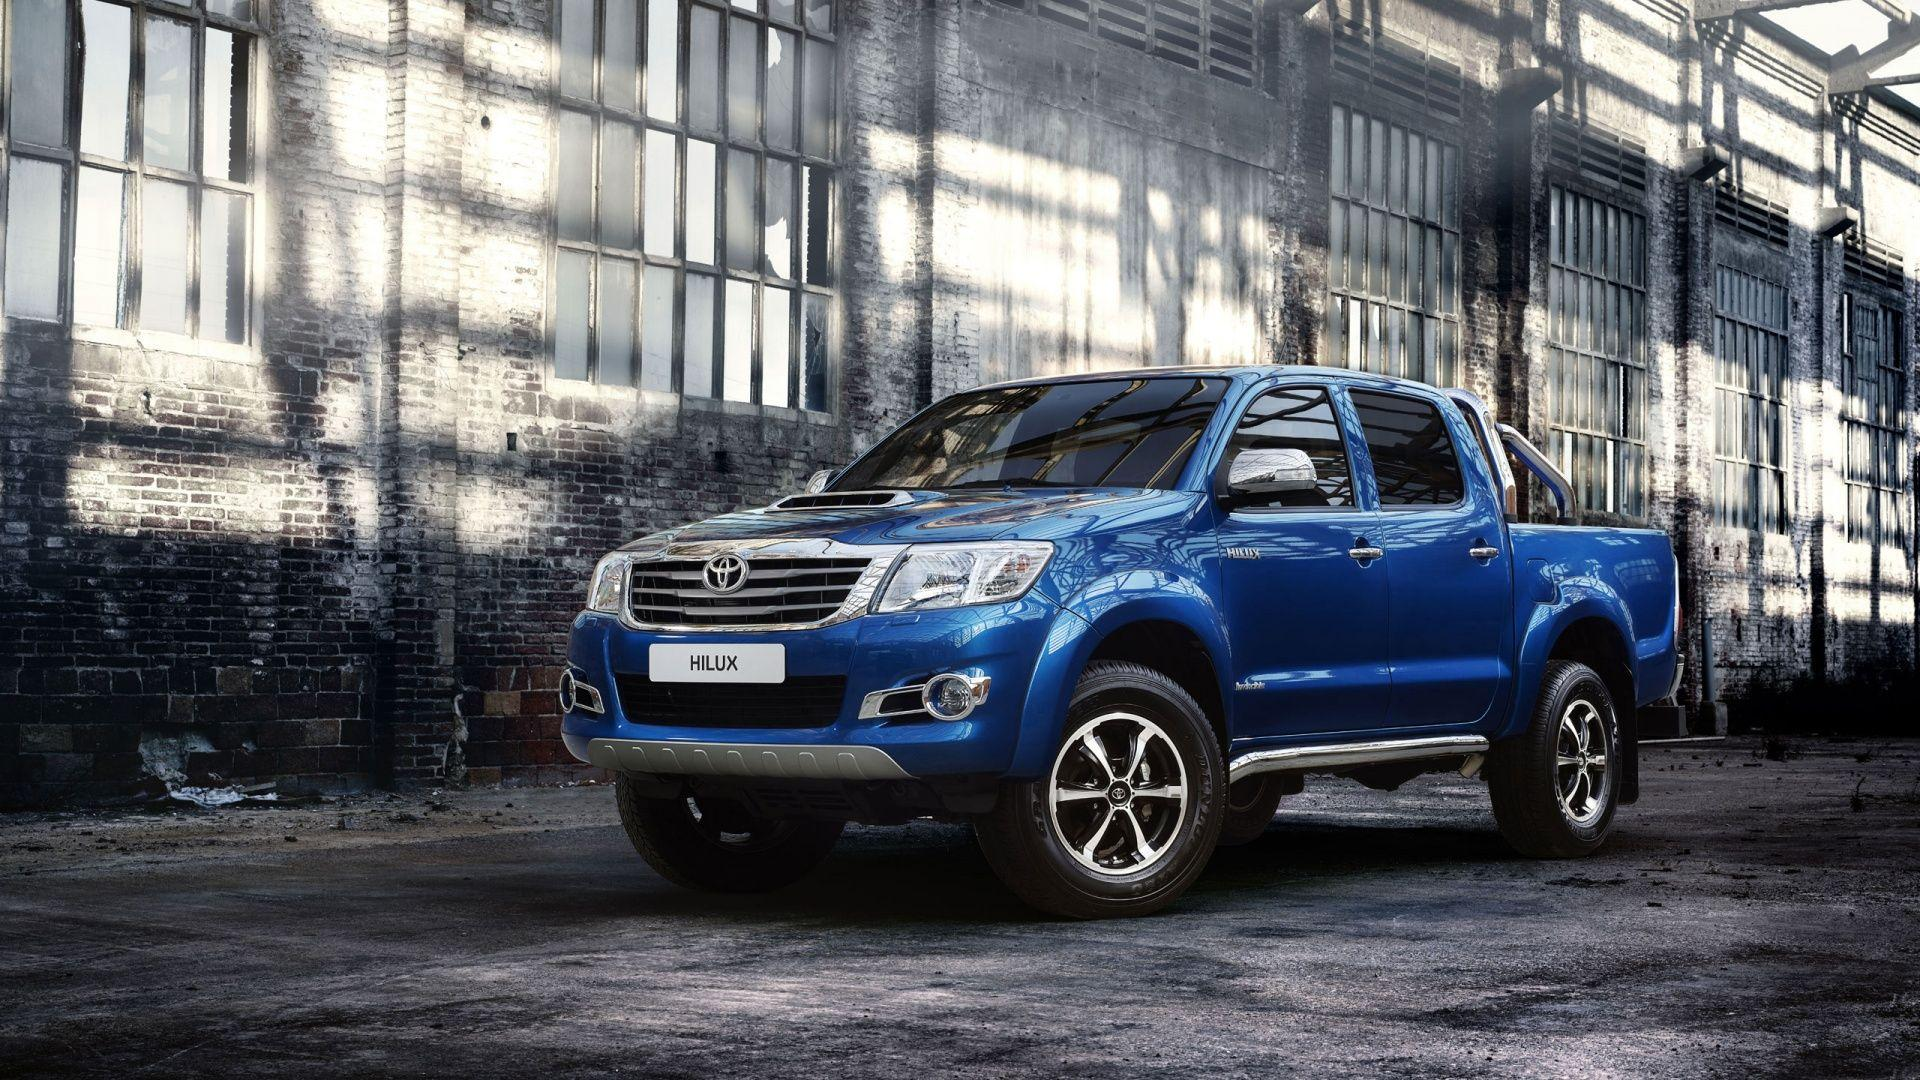 2014 Toyota Hilux Invincible Wallpapers